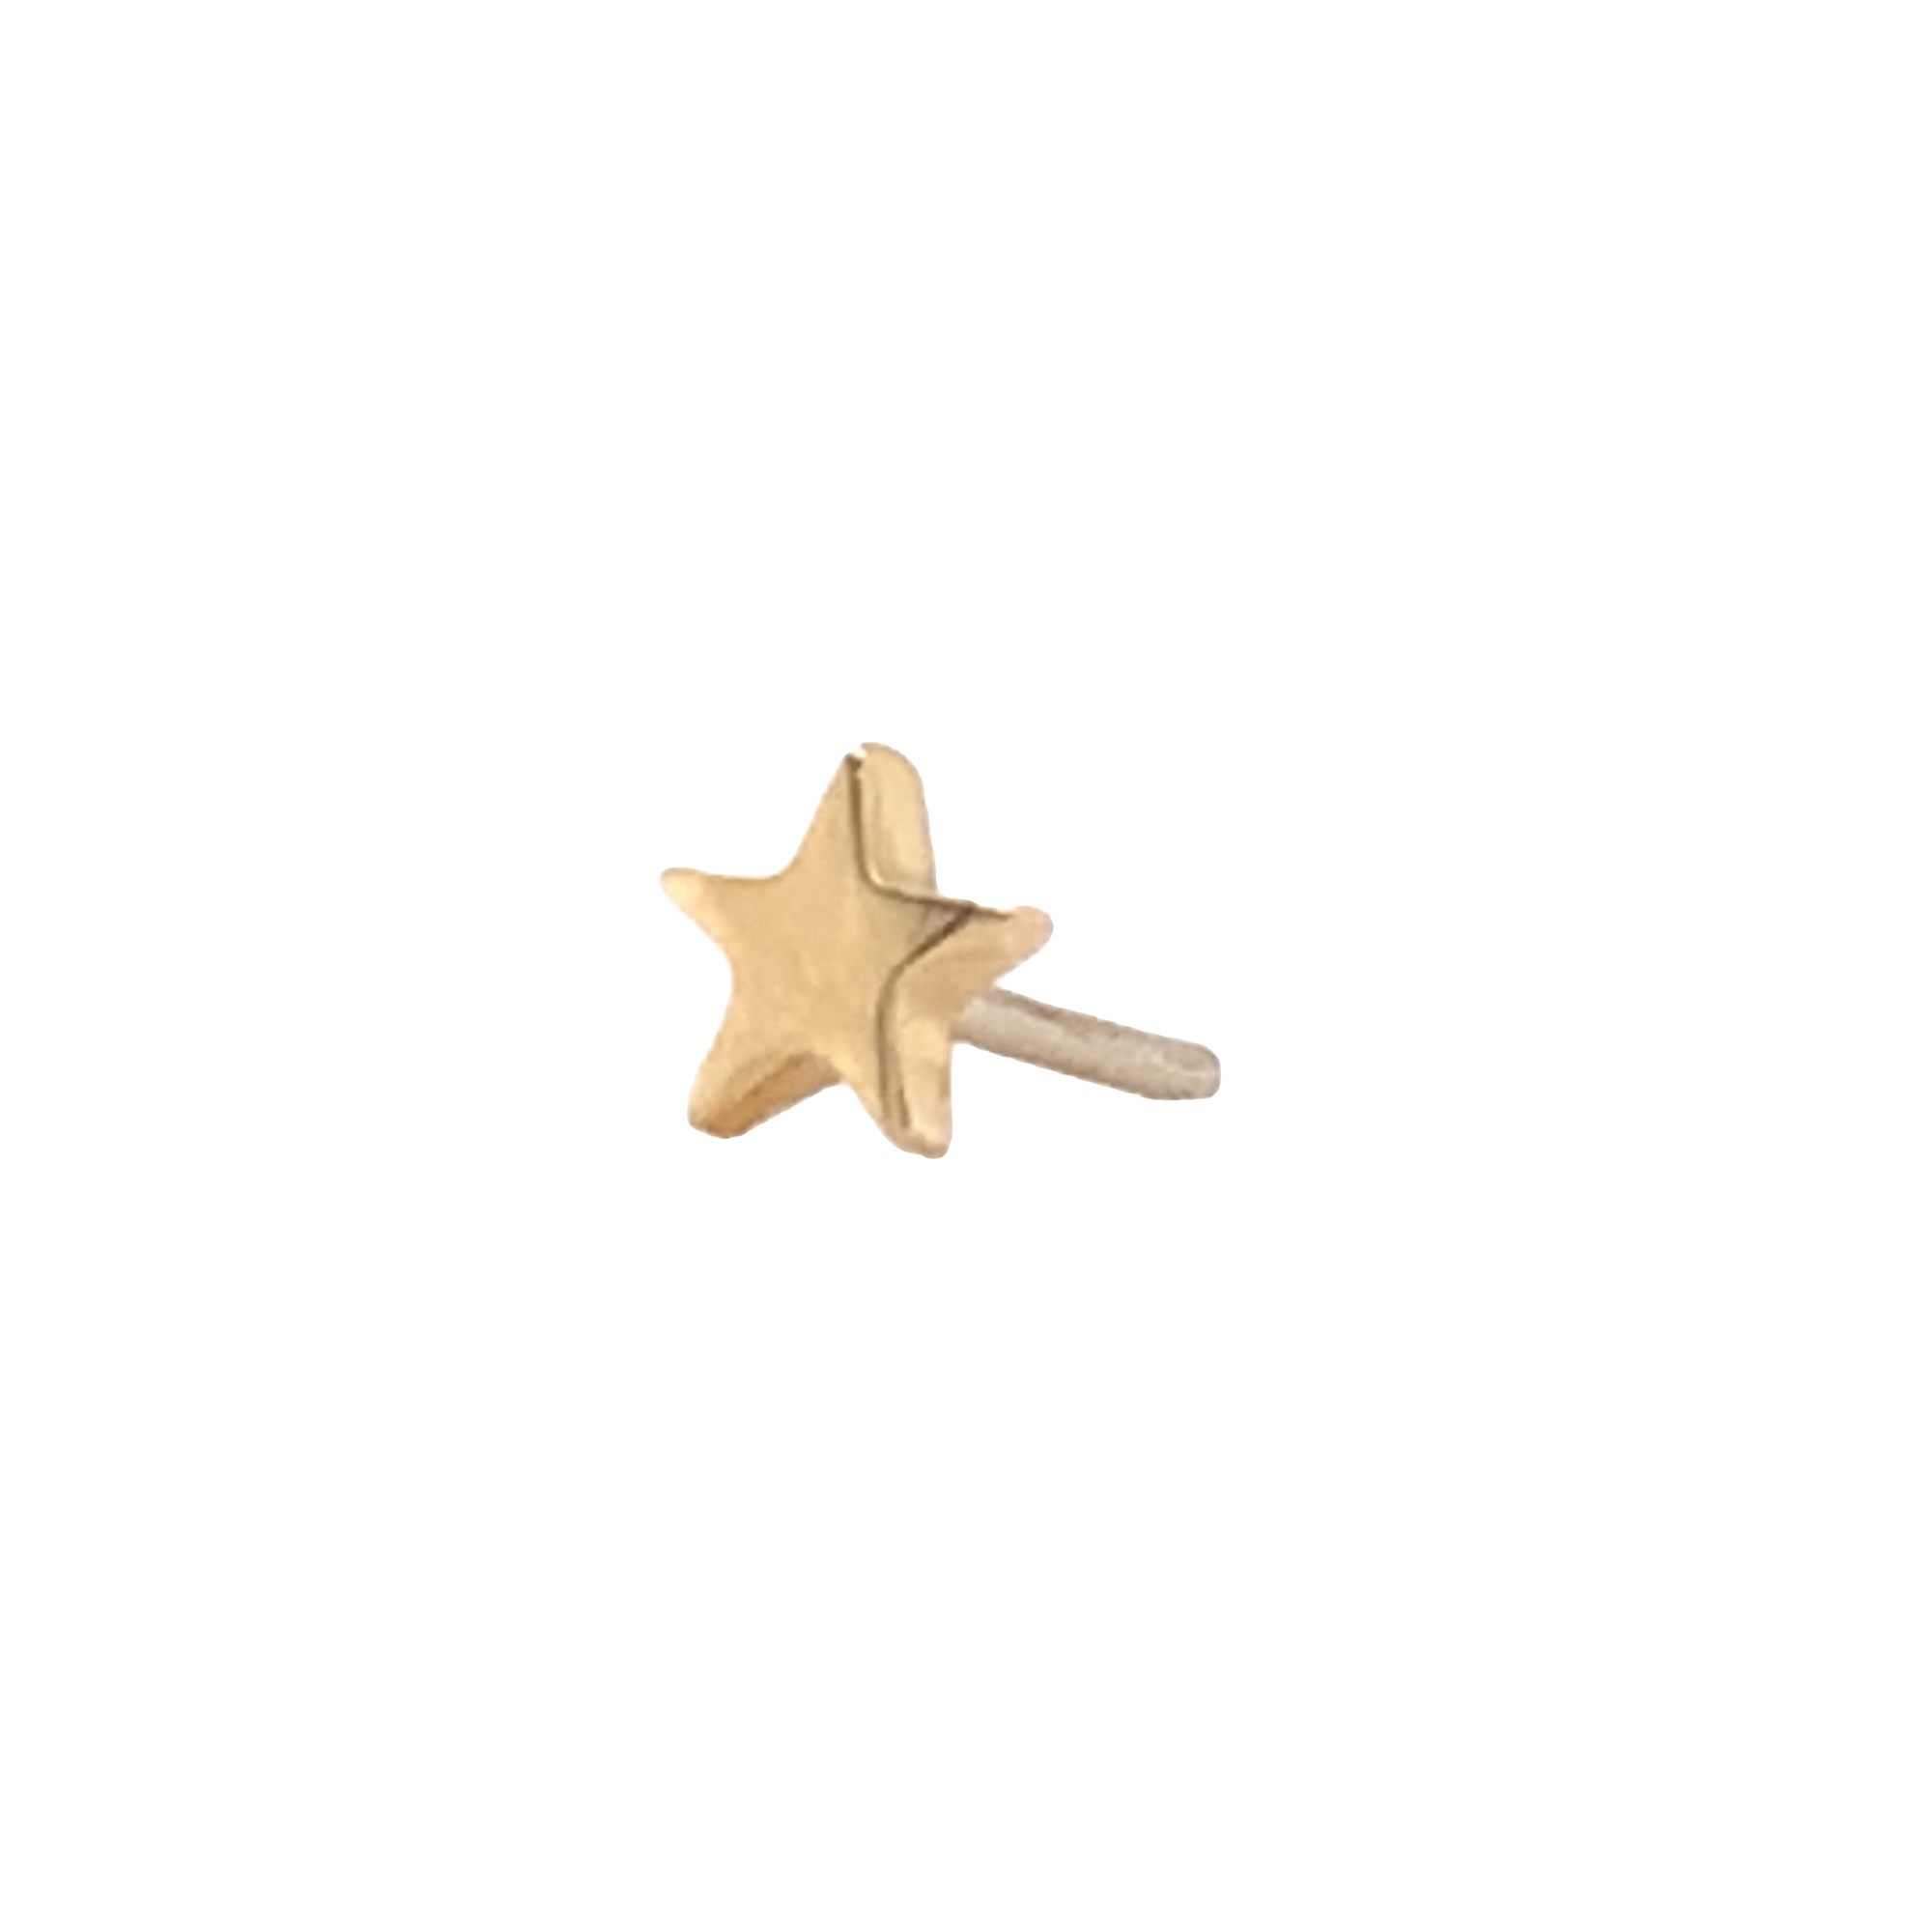 14Ct Gold Star End Attachment